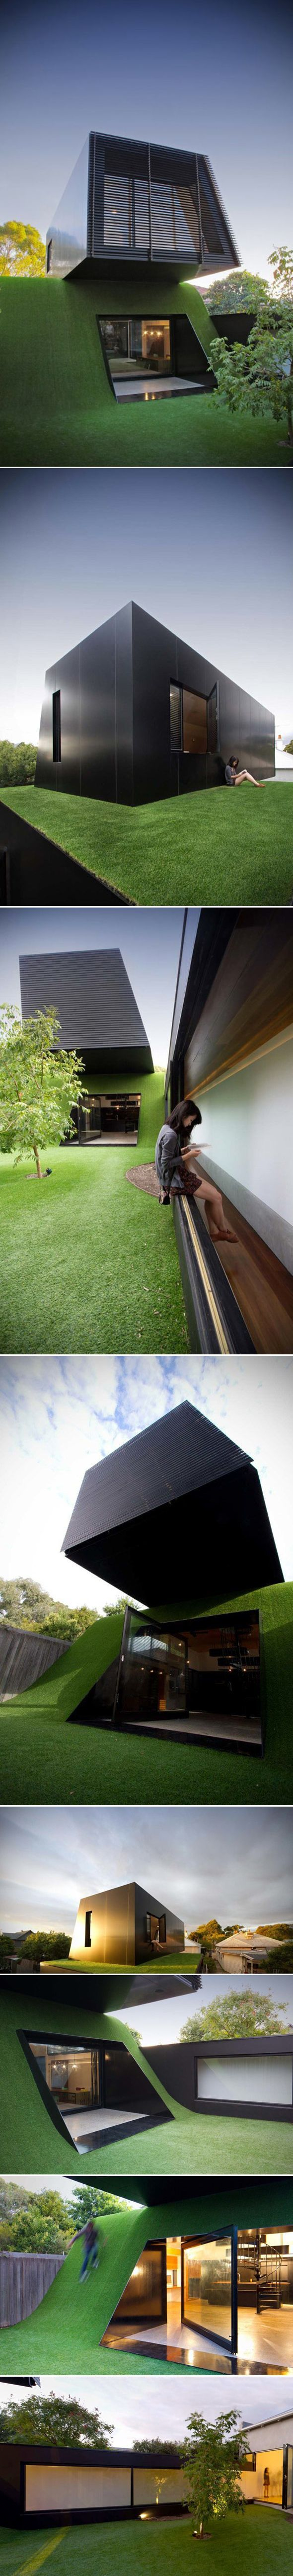 "Hill House by architect Andrew Maynard nice infographic Sublime accommodation in Melbourne by Andrew Maynard The week begins with this very big favorite architecture. This house called ""Hill House"" is the work of architect Andrew Maynard . The main idea is to create a false hill and integrate a module to the ultra-minimalist design."